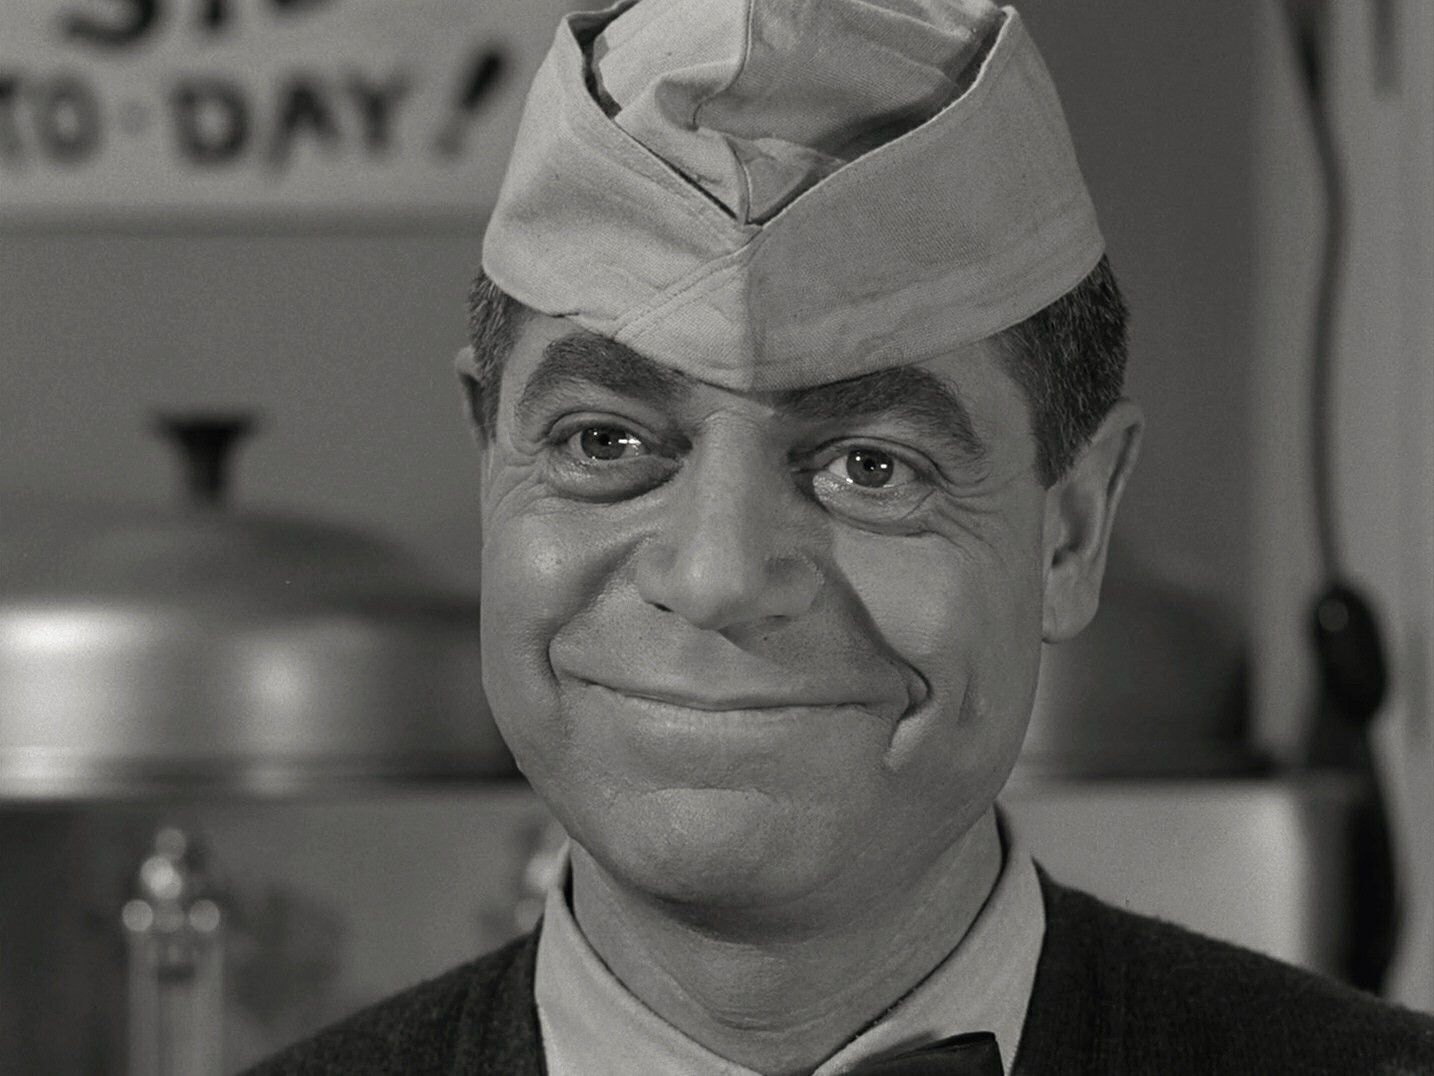 Barney Phillips Will The Real Martian Please Stand Up Twilight Zone Twilight Zone Episodes Twilight